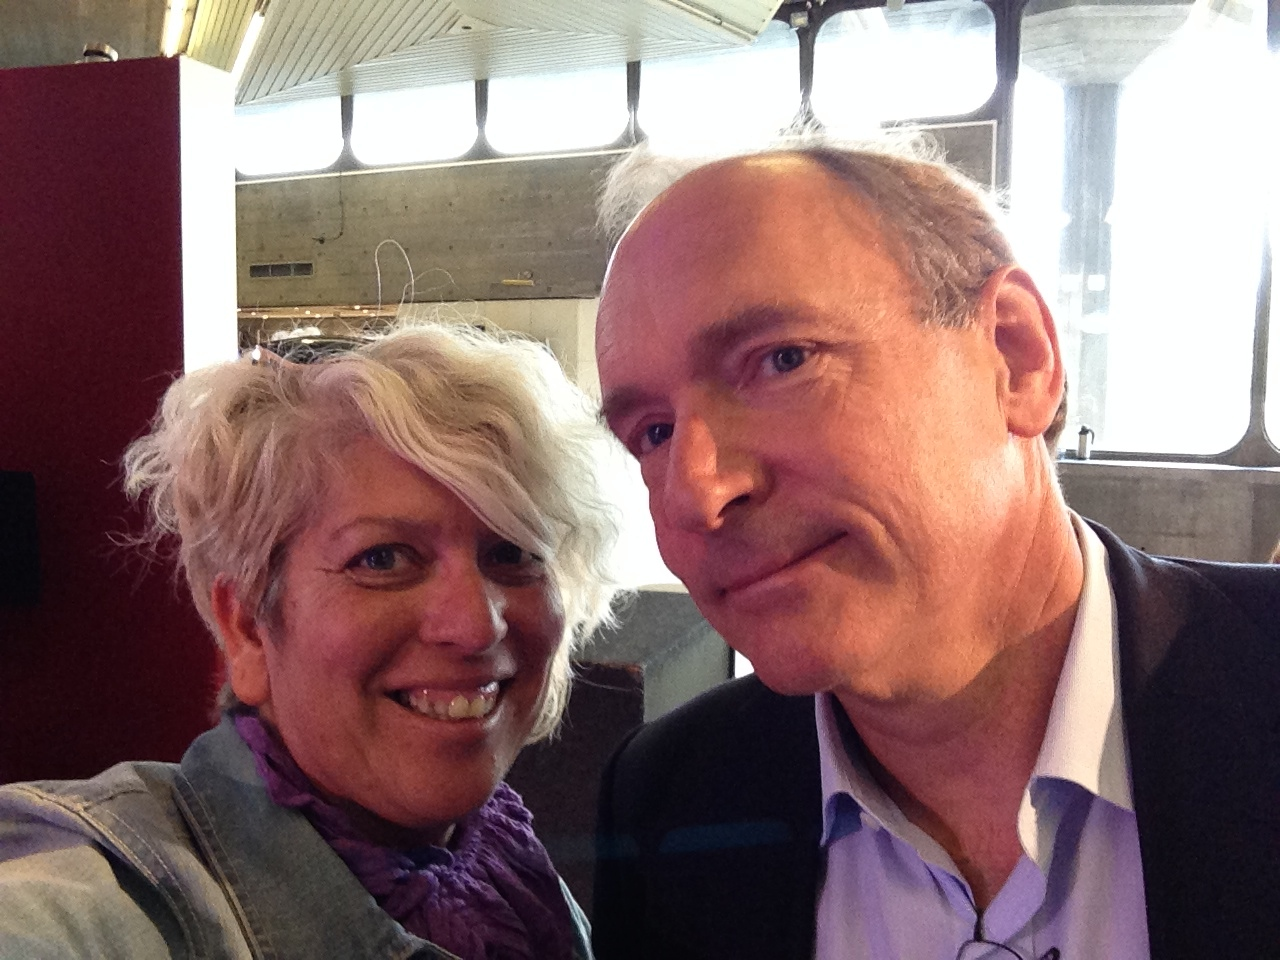 #WebWeWantFest Launch at Southbank with Sir Tim Berners-Lee #netneutrality